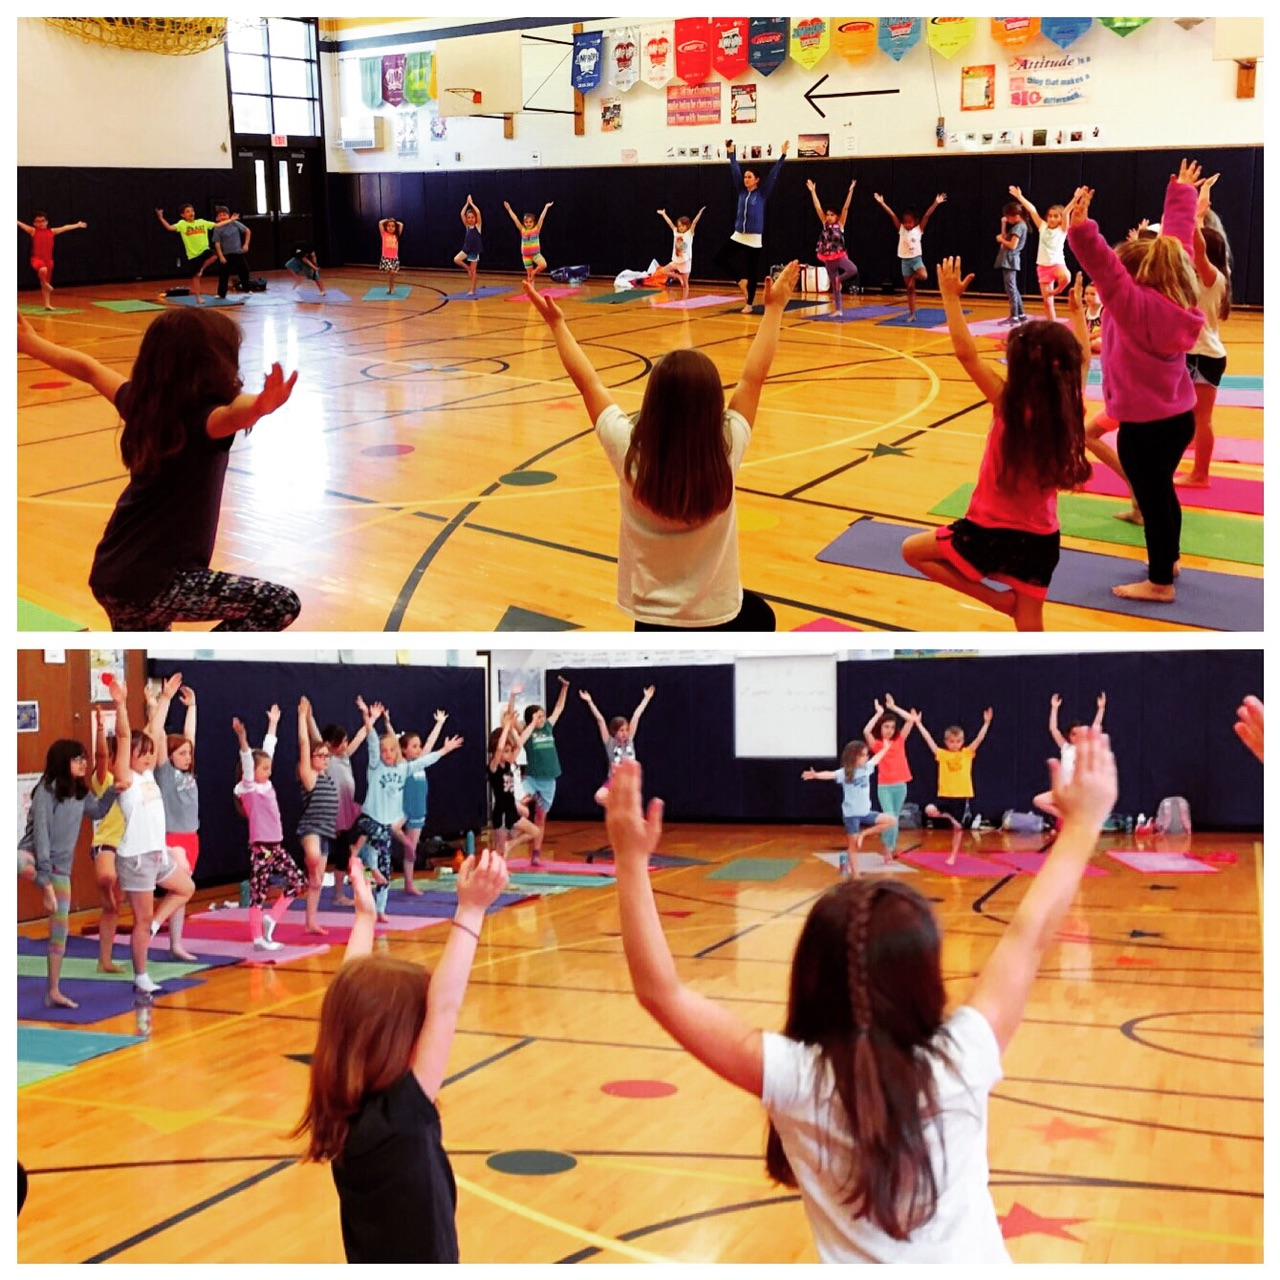 Butterfly Kids Yoga's school program in Webster, NY. Big thanks to Plank Road South for the opportunity to lead after-school Yoga Club sessions this spring!